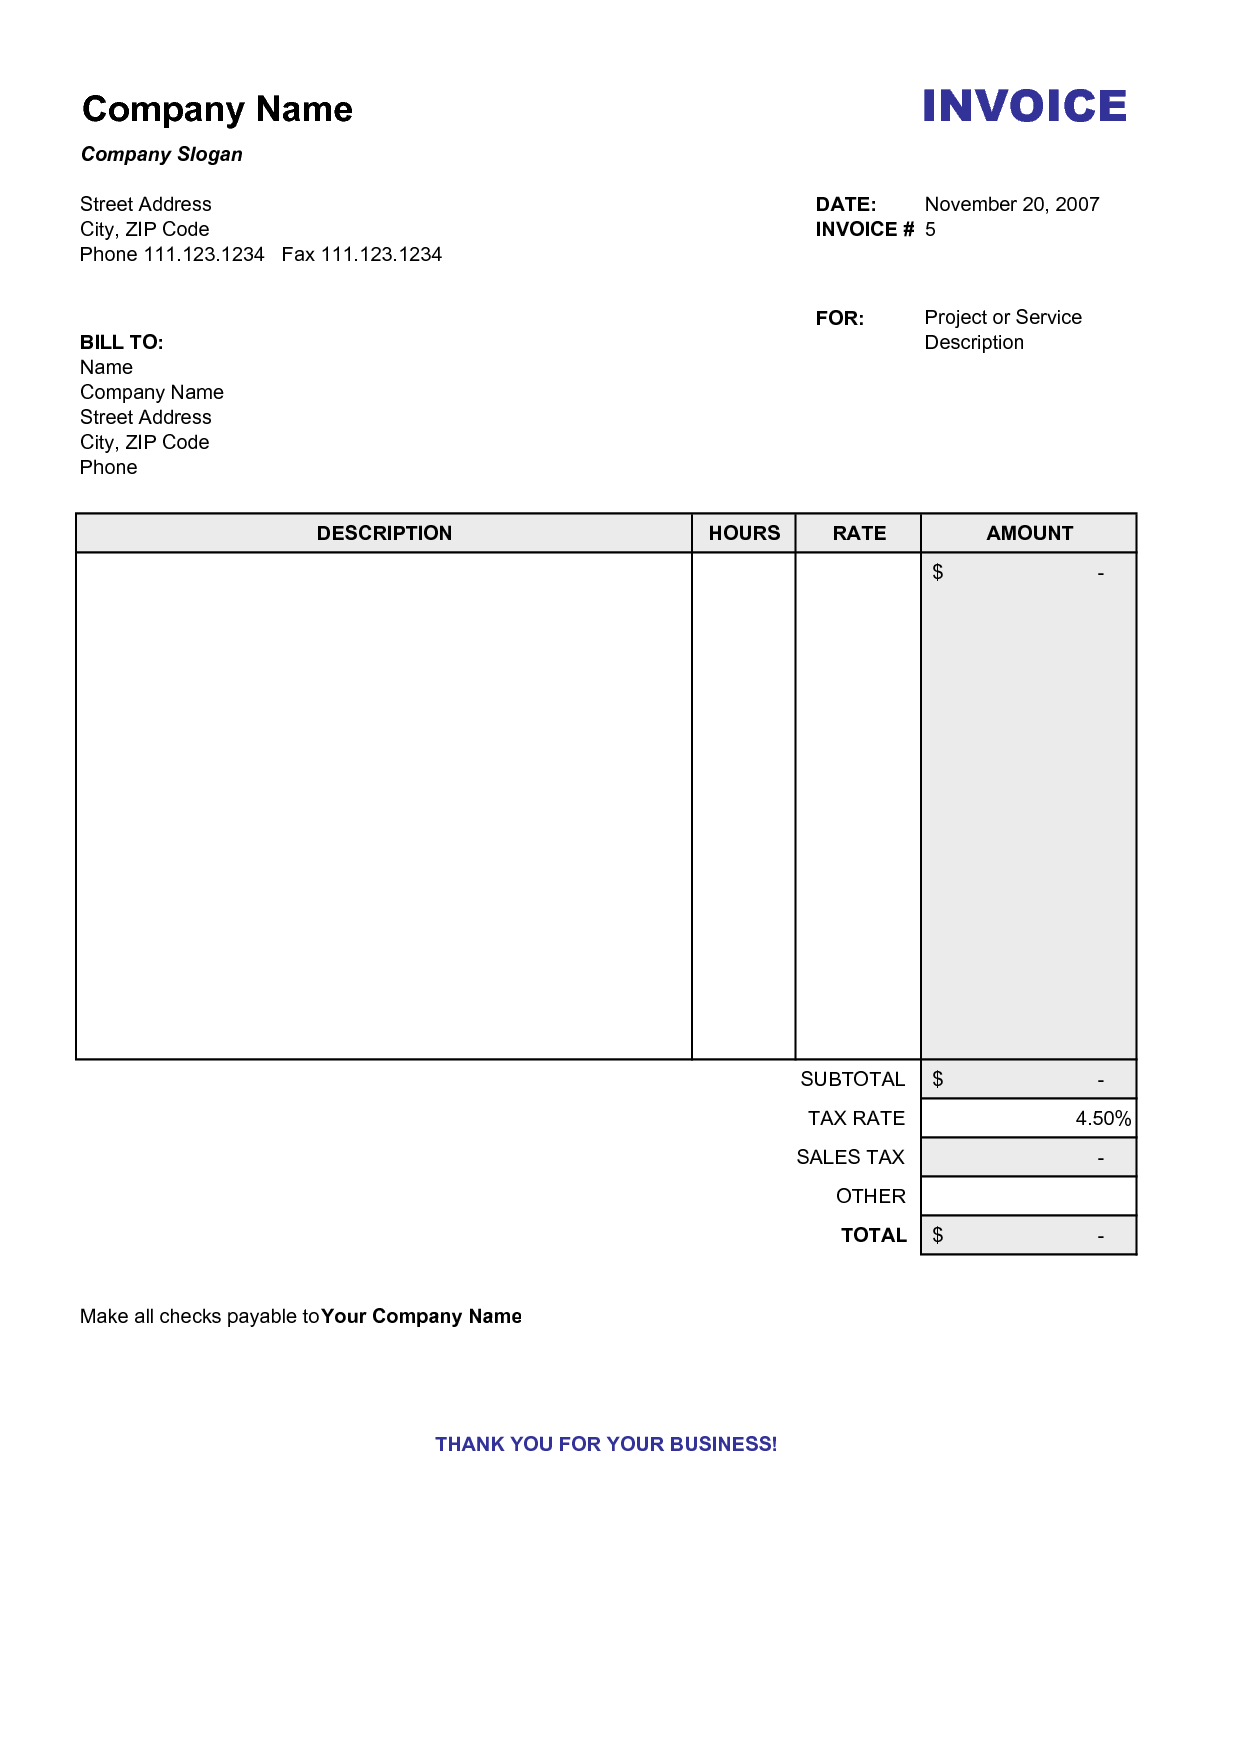 Blank Billing Invoice | Scope Of Work Template | Organization - Free Printable Invoice Forms